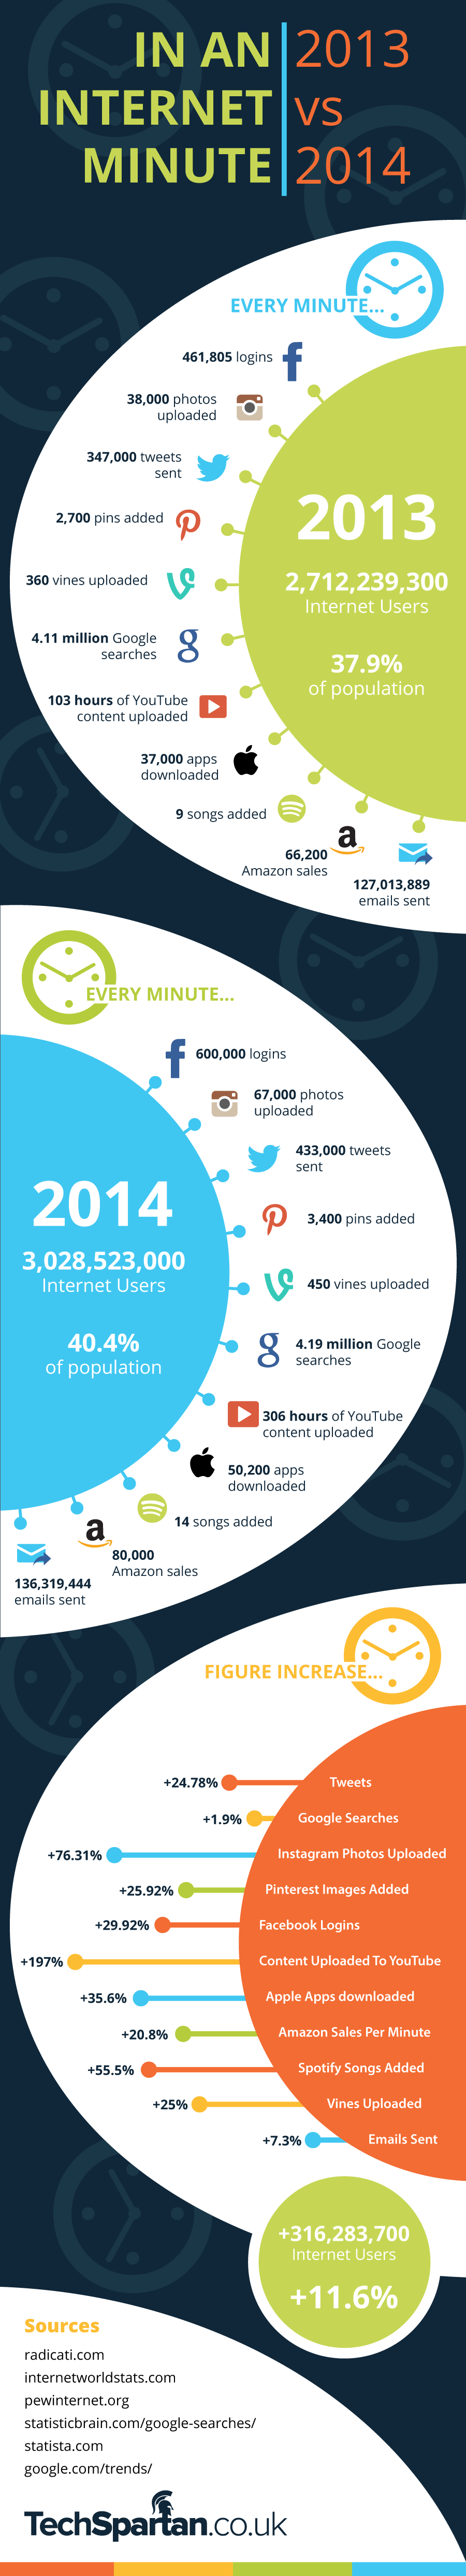 60-seconds-internet-2013-2014